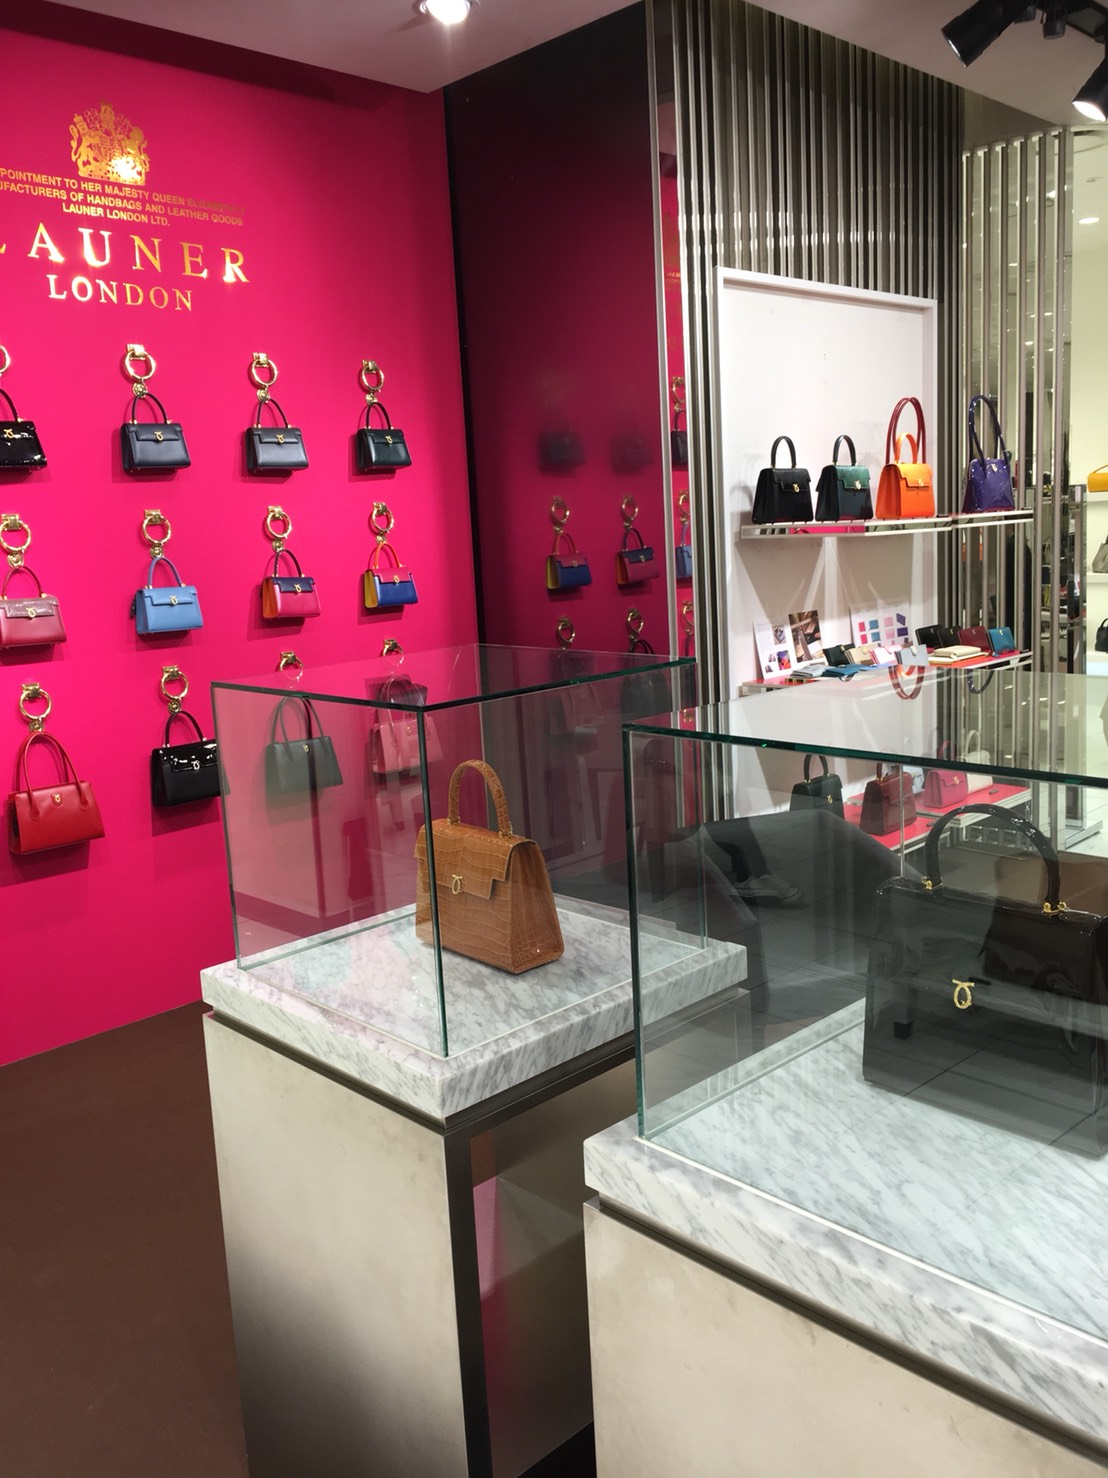 Launer London official limited store at ISETAN SHINJUKU is now open